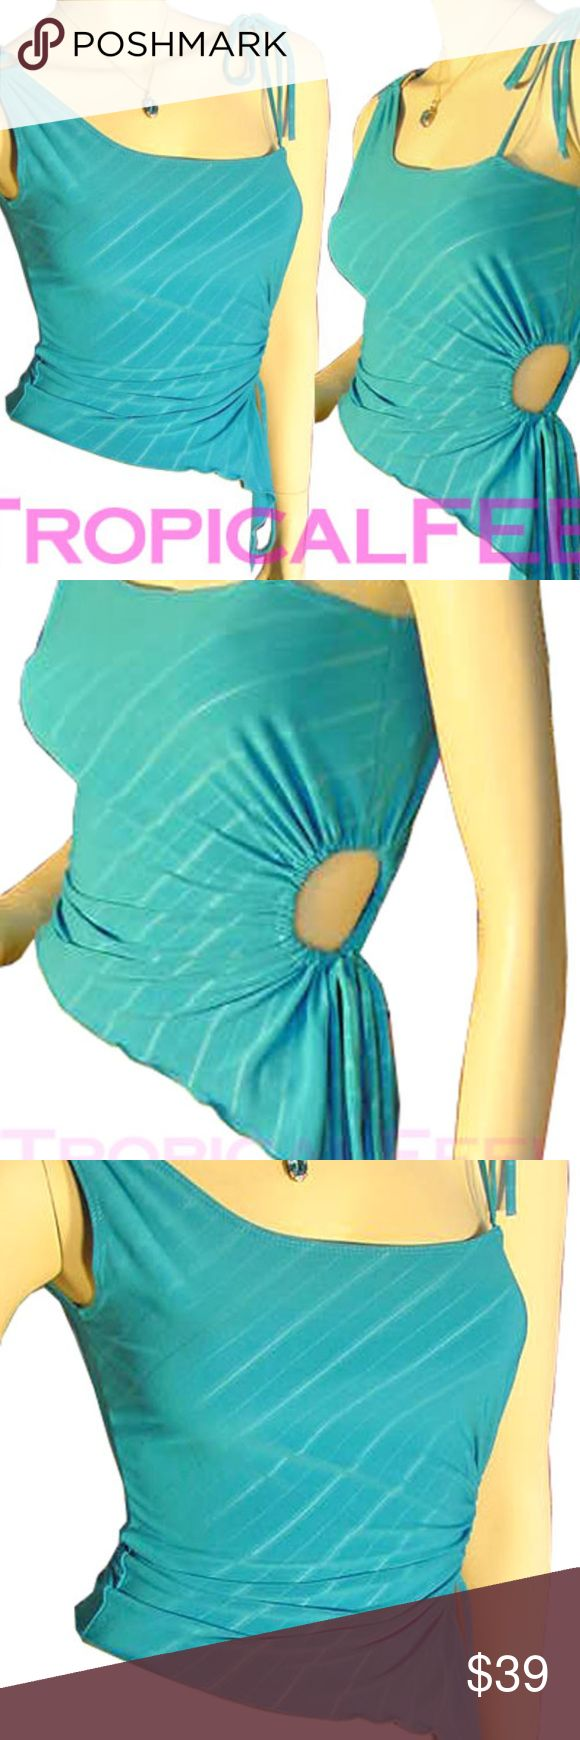 """New Turquoise Blue Sleeveless One Shoulder Top S New Turquoise Blue Sleeveless Spaghetti Strap One Shoulder Top Blouse. Light opaque white striped pattern. Silver buckle, spaghetti strap tie, asymmetrical hem, open circle cut out drawstring tie to adjust waistline fit. MADE in USA. Fabric 92% Polyester 8% Spandex.  Size Jr MEDIUM. BUST (pit to pit) 17"""" across unstretched, 19"""" across stretched, LENGTH (PIT to bottom hem) 12"""" one side, 25"""" cut-out side  Womens tops as summer tops, casual wear…"""